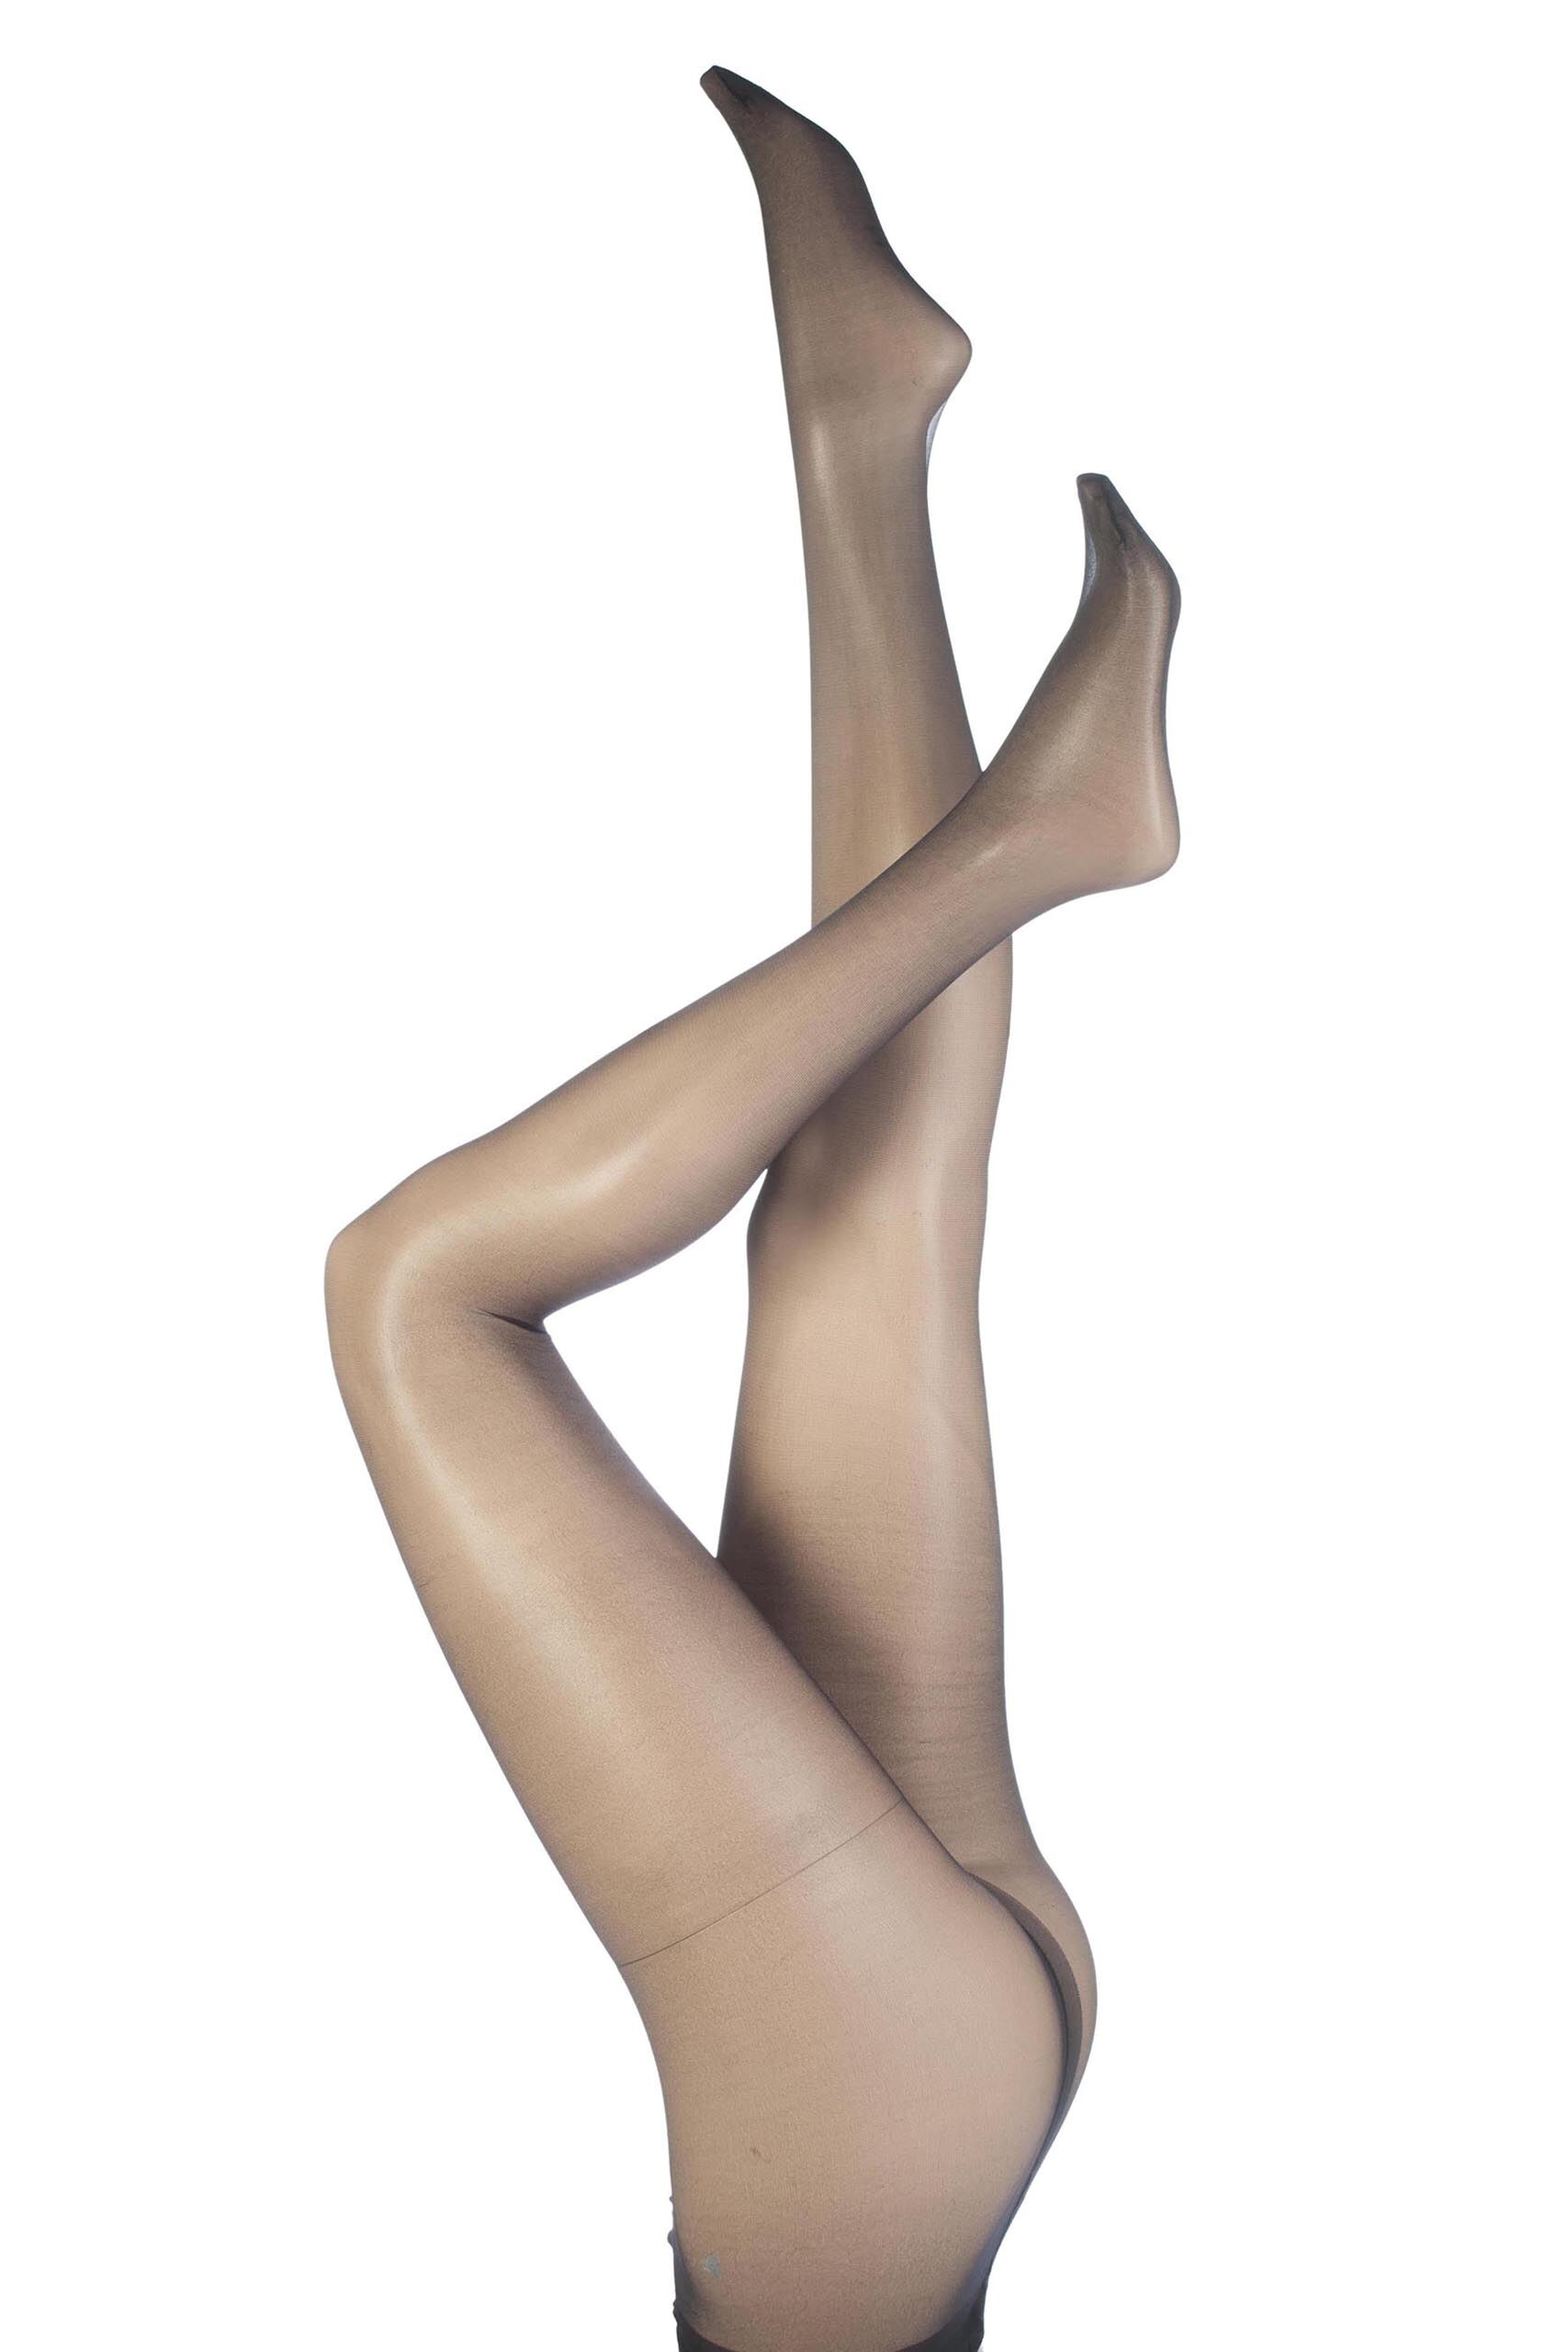 Image of 1 Pair Black 10 Denier Ultra Shine Tights with Silk Finish Ladies Small - Aristoc